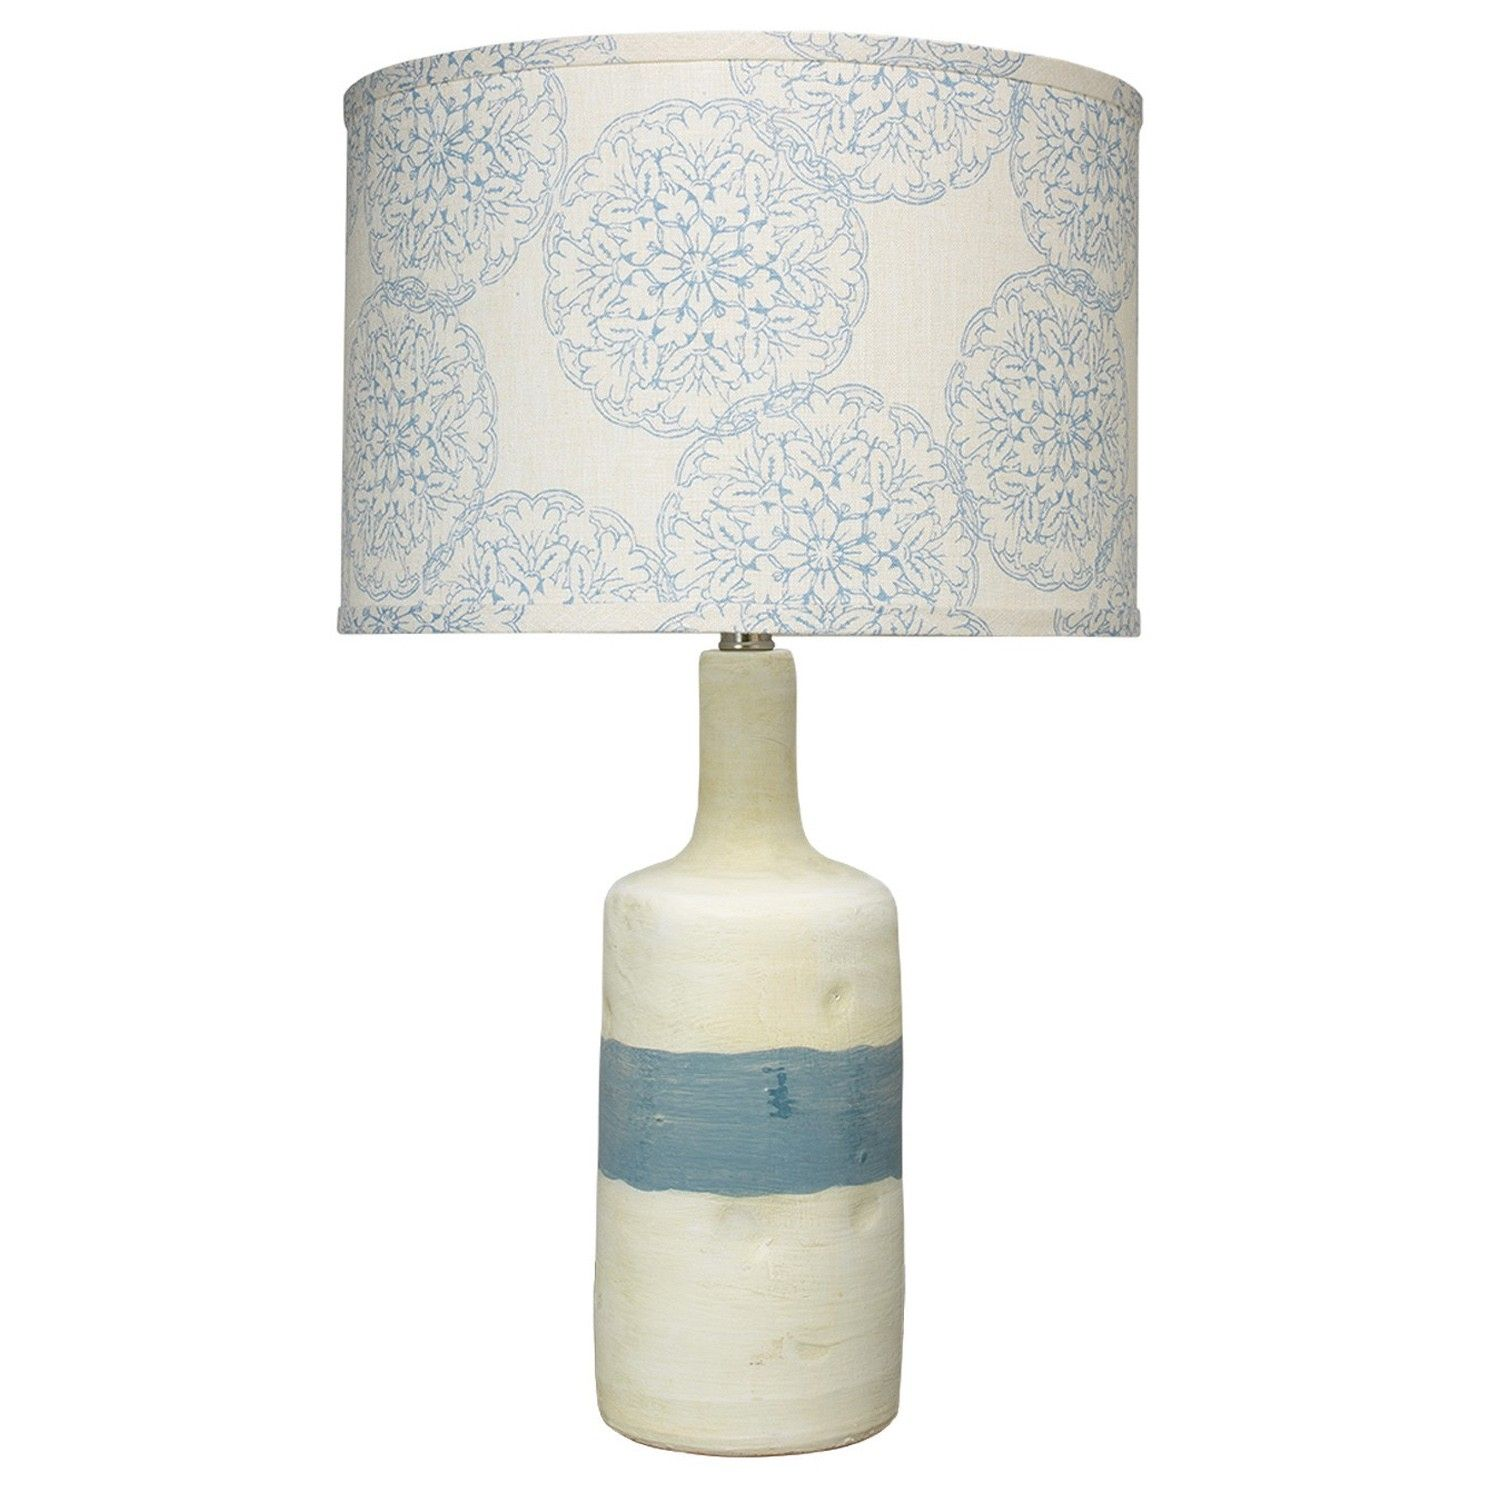 Jamie young co adobe table lamp the adobe table lamp is part of the jamie young collection this collection is full mozeypictures Image collections